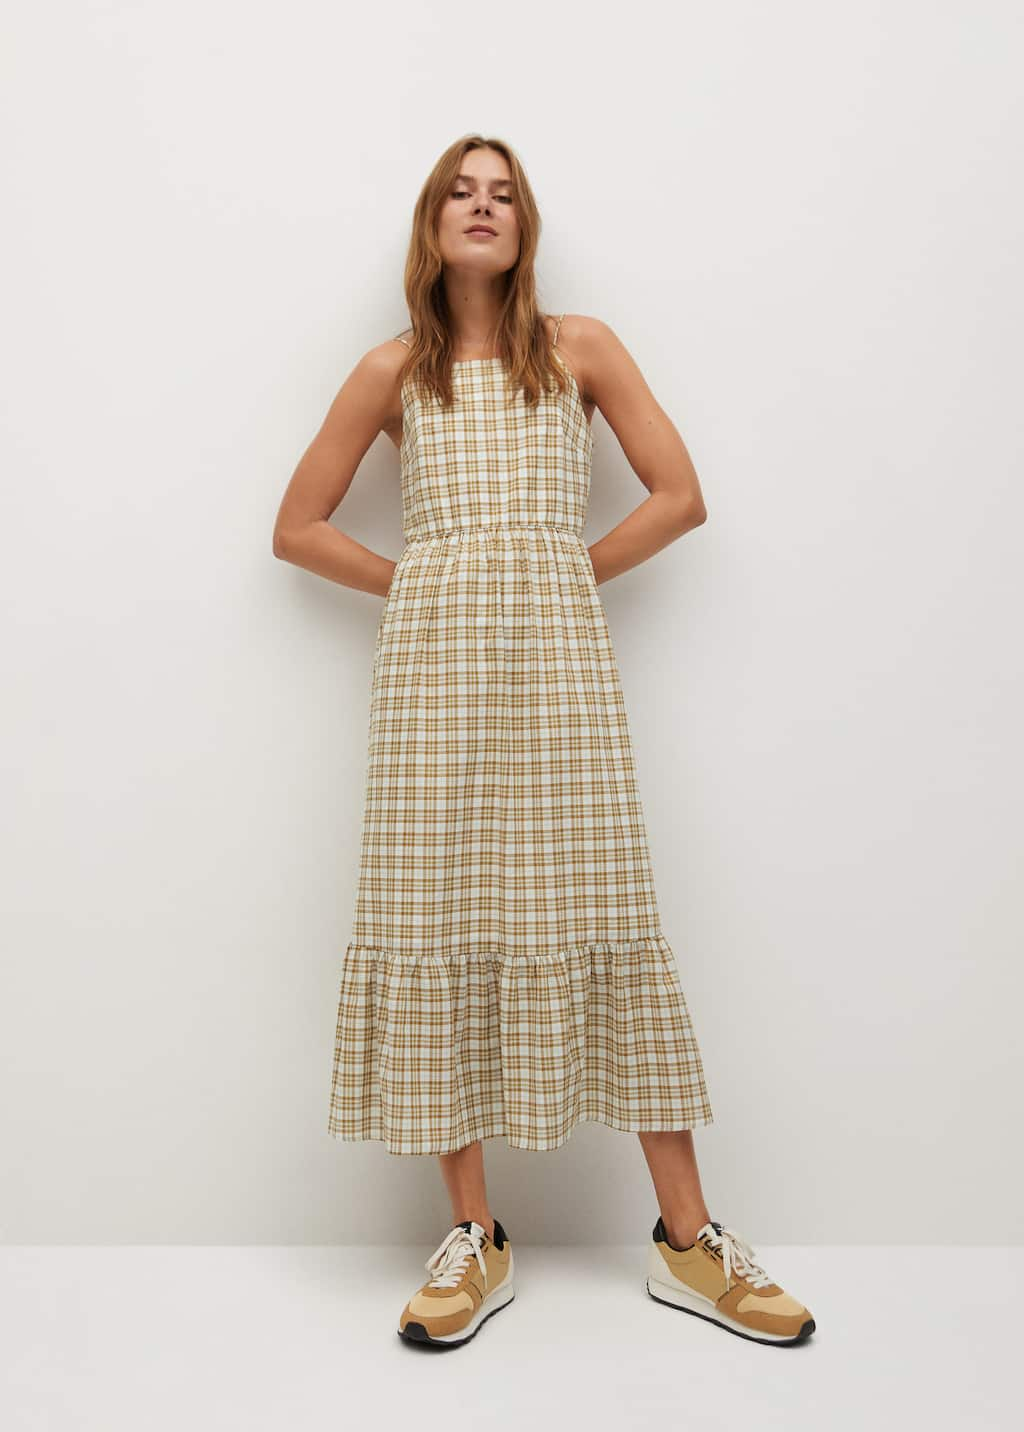 Checked cotton dress - General plane